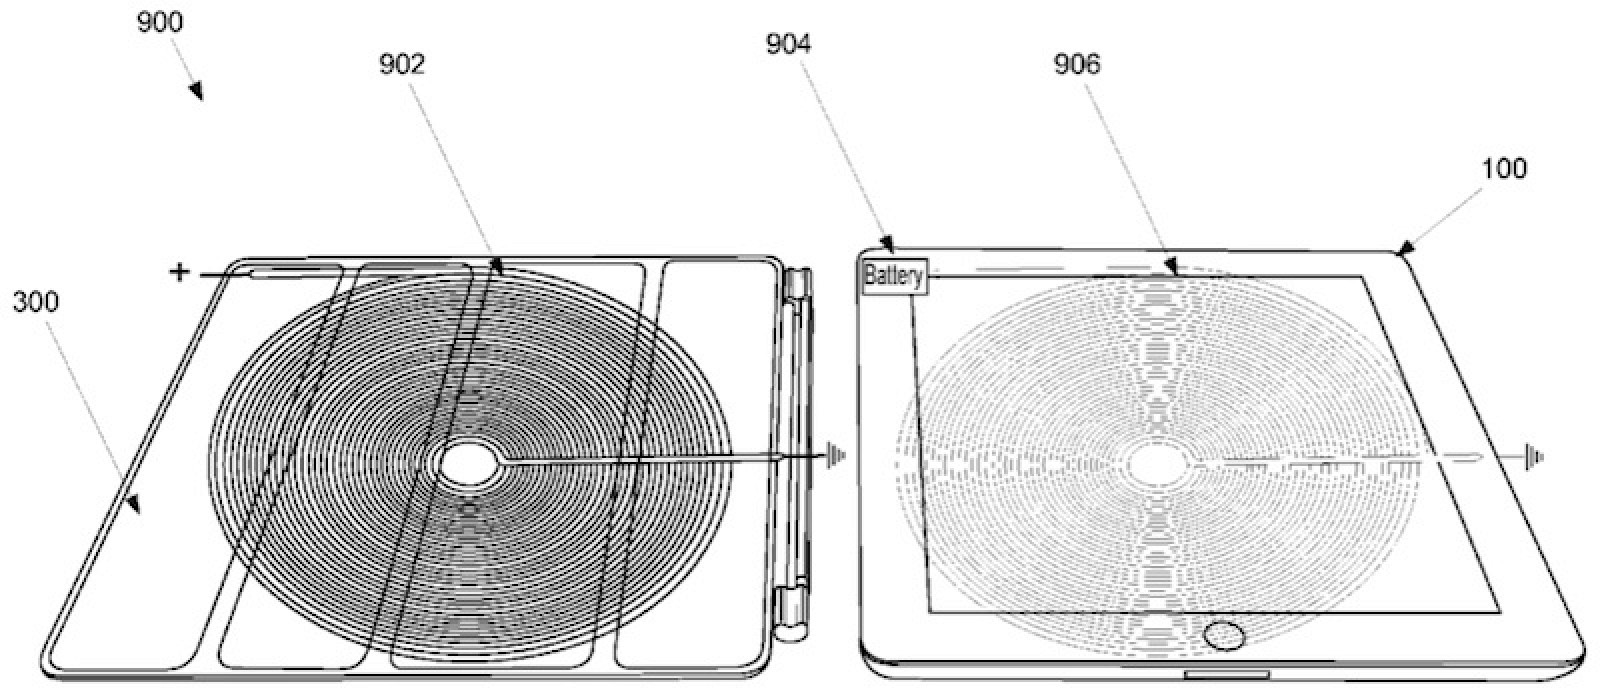 Apple Applies For Patent On Wireless Ipad Charging Via